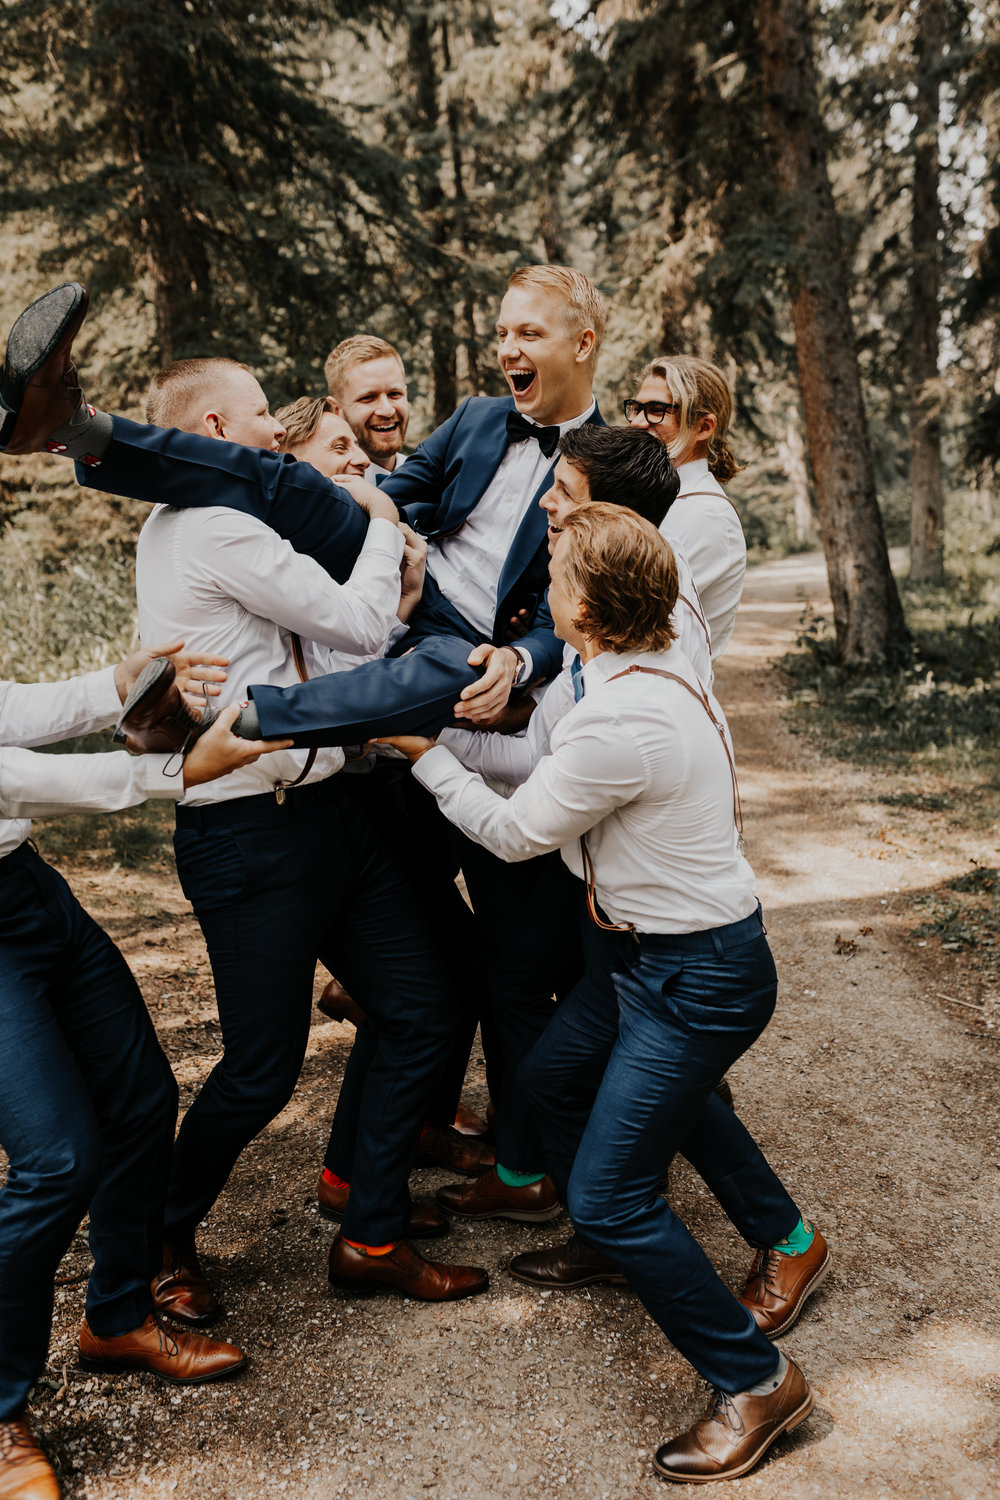 Groomsmen Wedding Photos l Banff Wedding l Calgary Wedding l Oregon Wedding Photographer l Katy Rose Photo-33.jpg